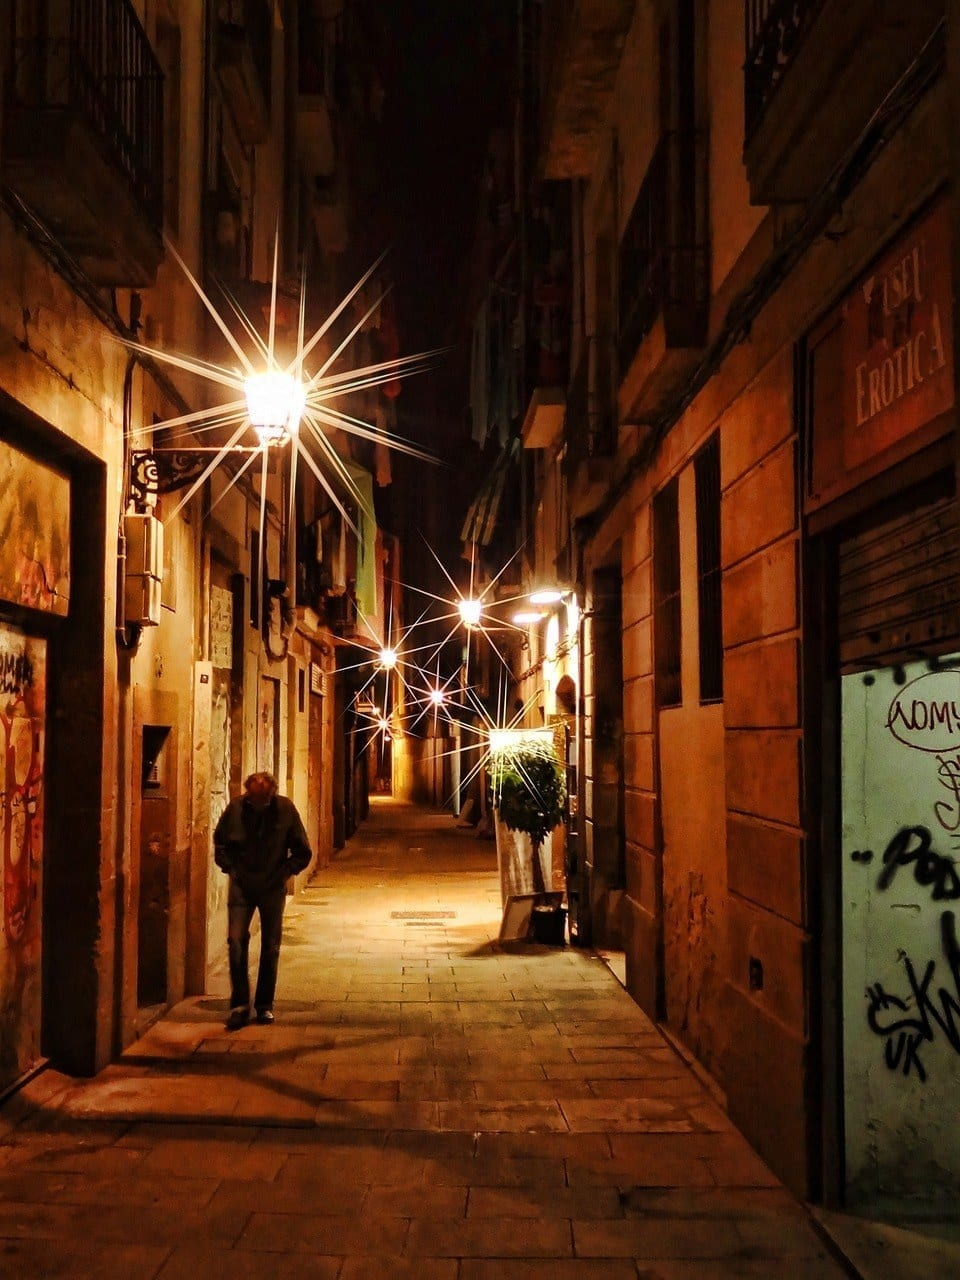 A dark side street in Barcelona; the street lights have points like stars.